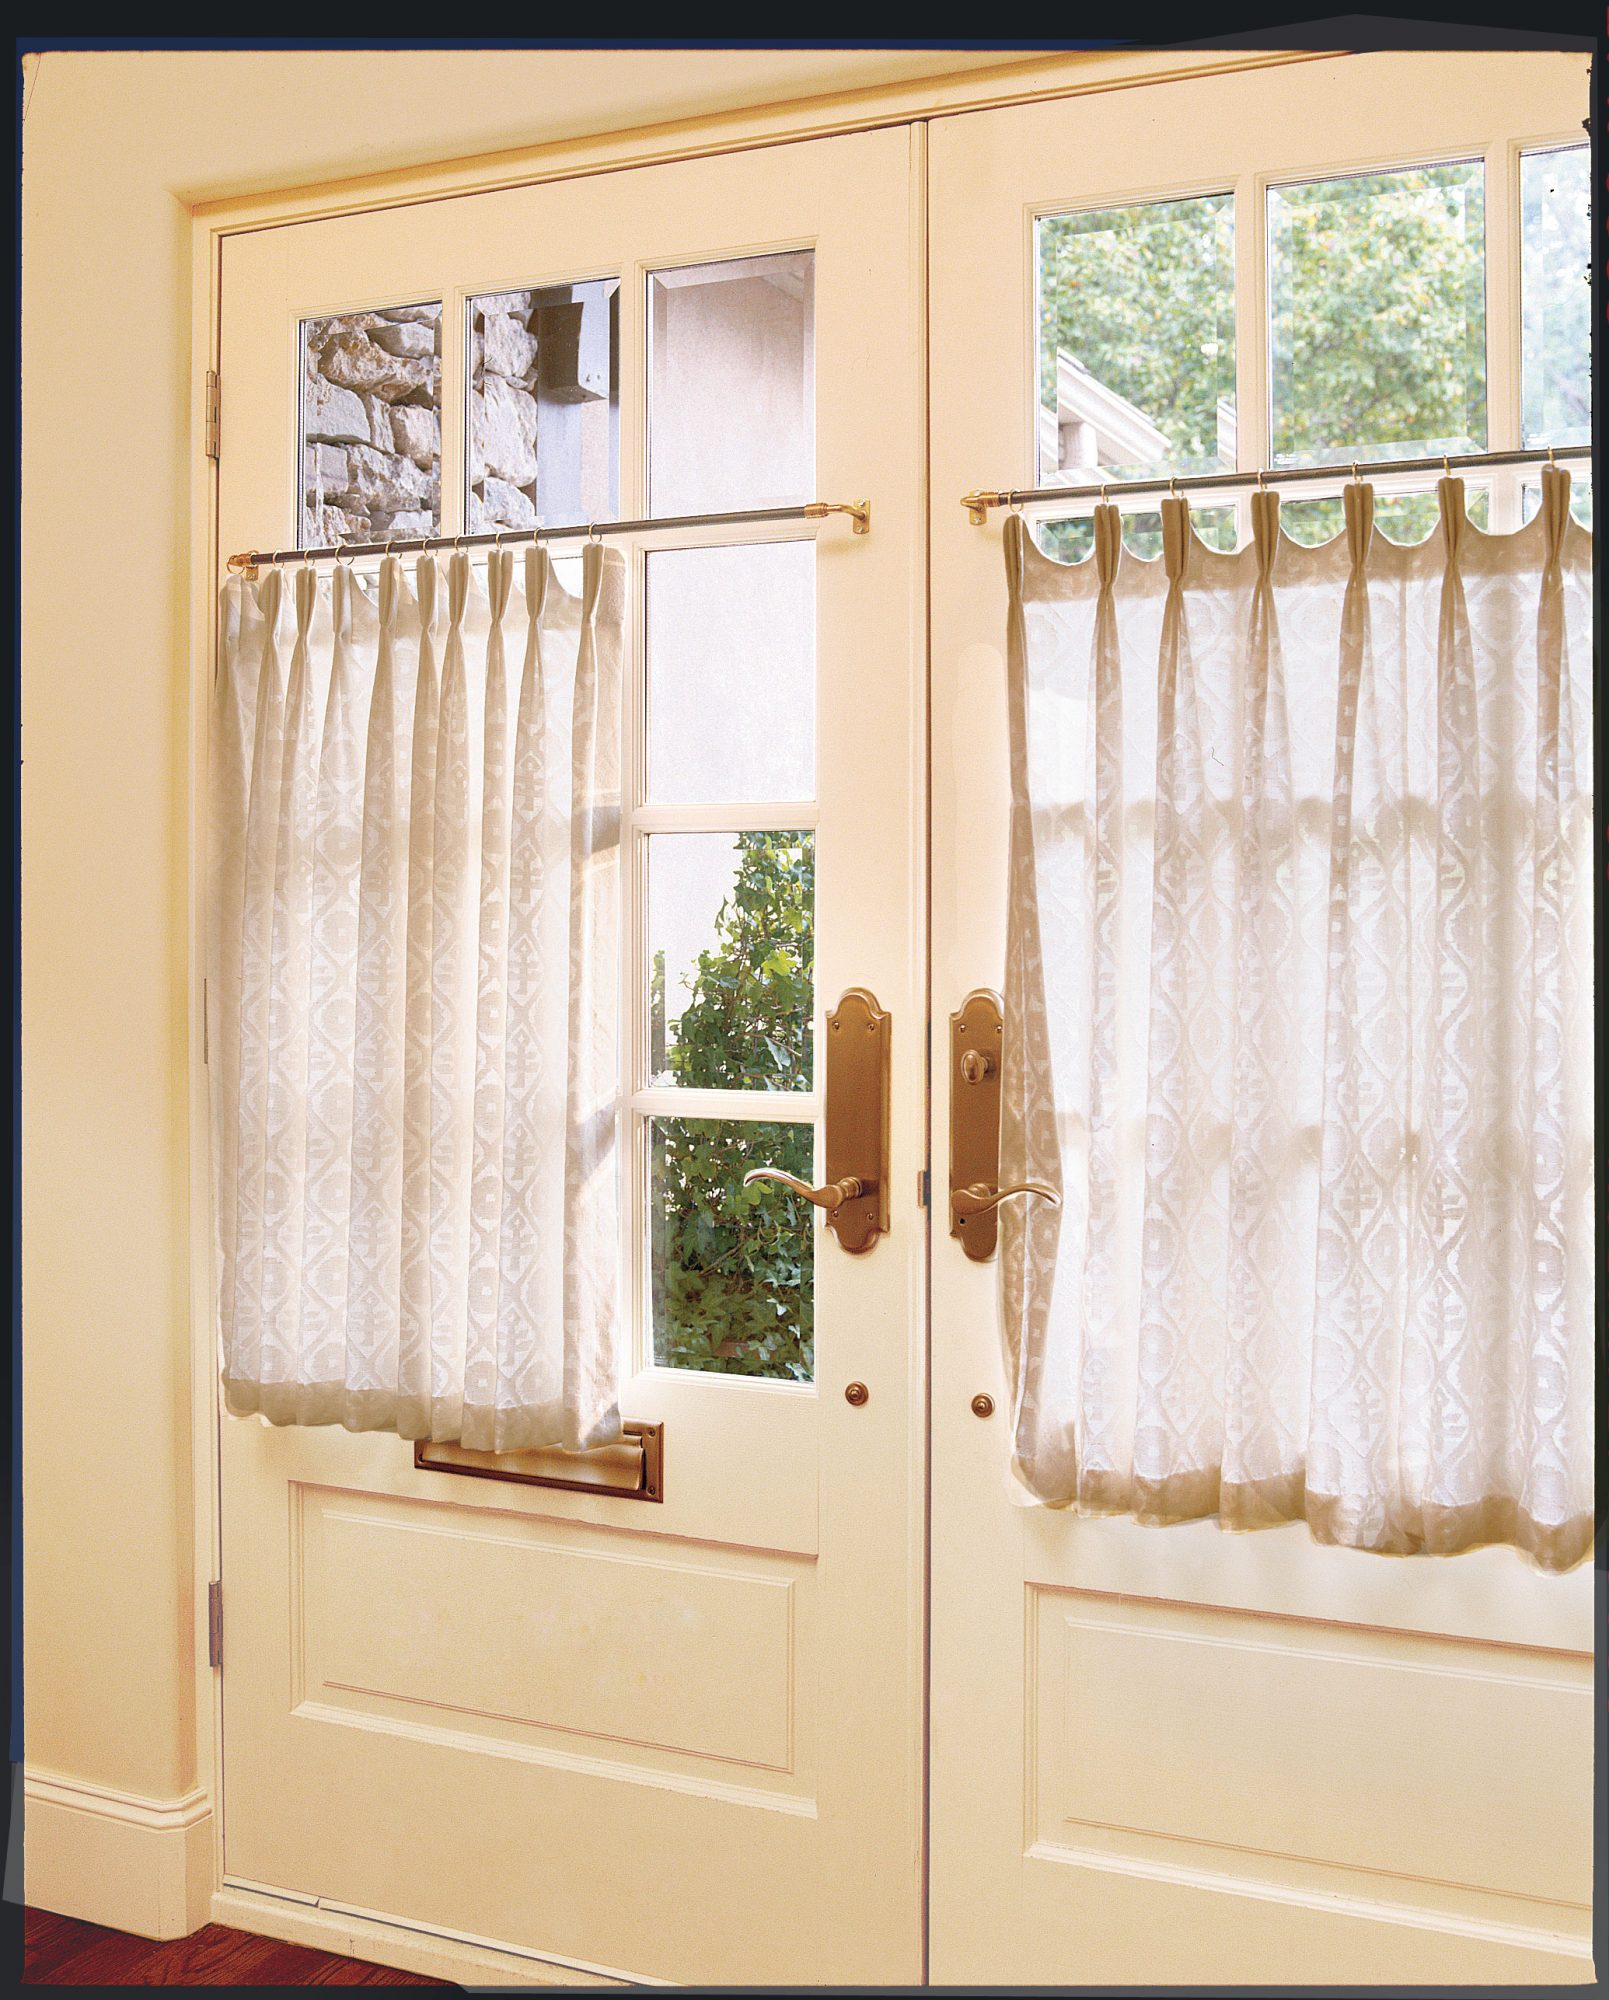 Simply Dressed Cafe Curtains Southern Living